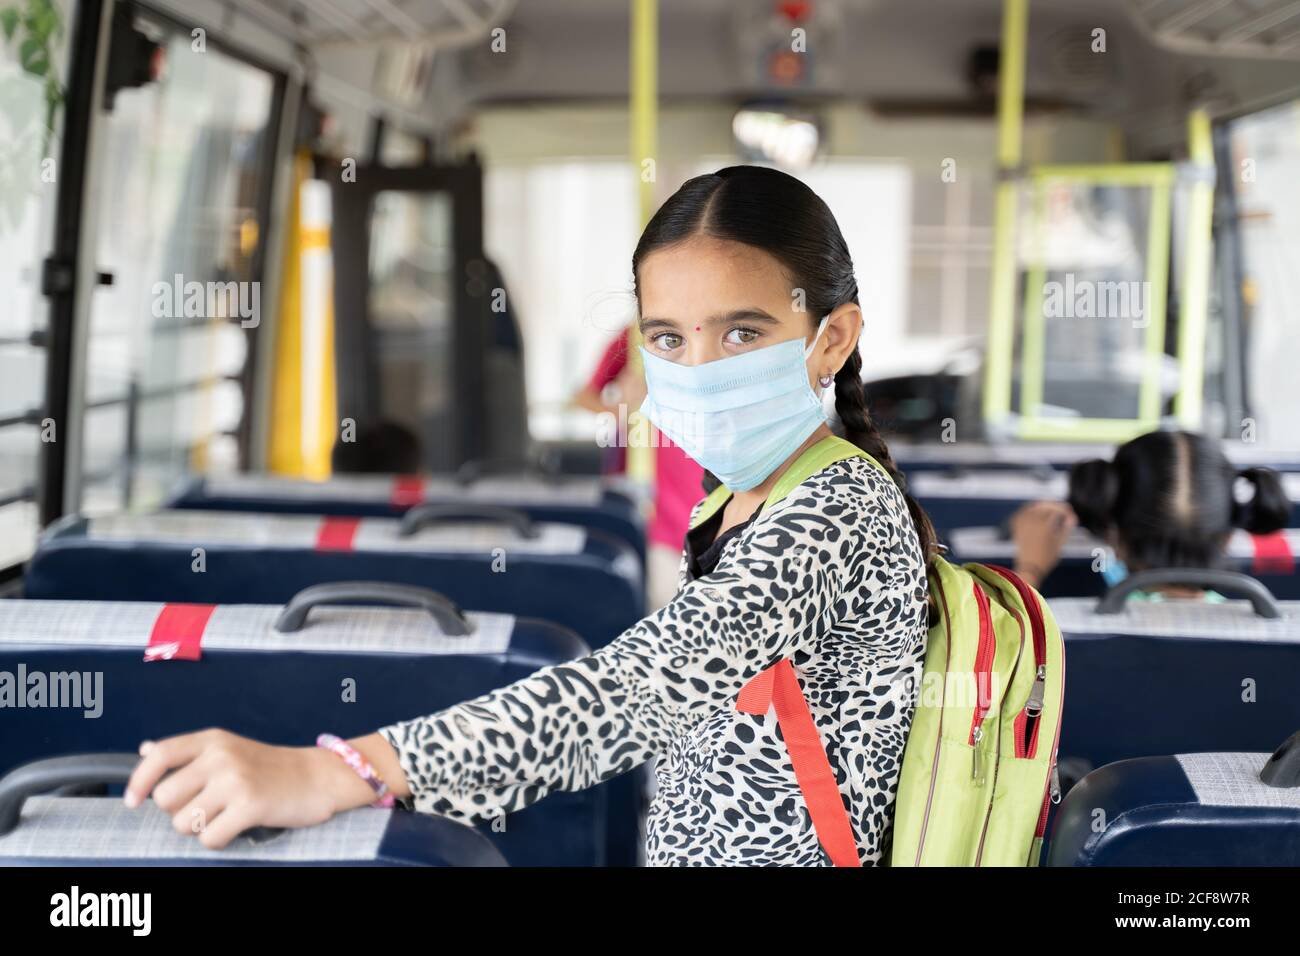 Portrait of Girl kid student in medical mask inside the school bus looking at camera - Concept of school reopen or back to school with new normal Stock Photo